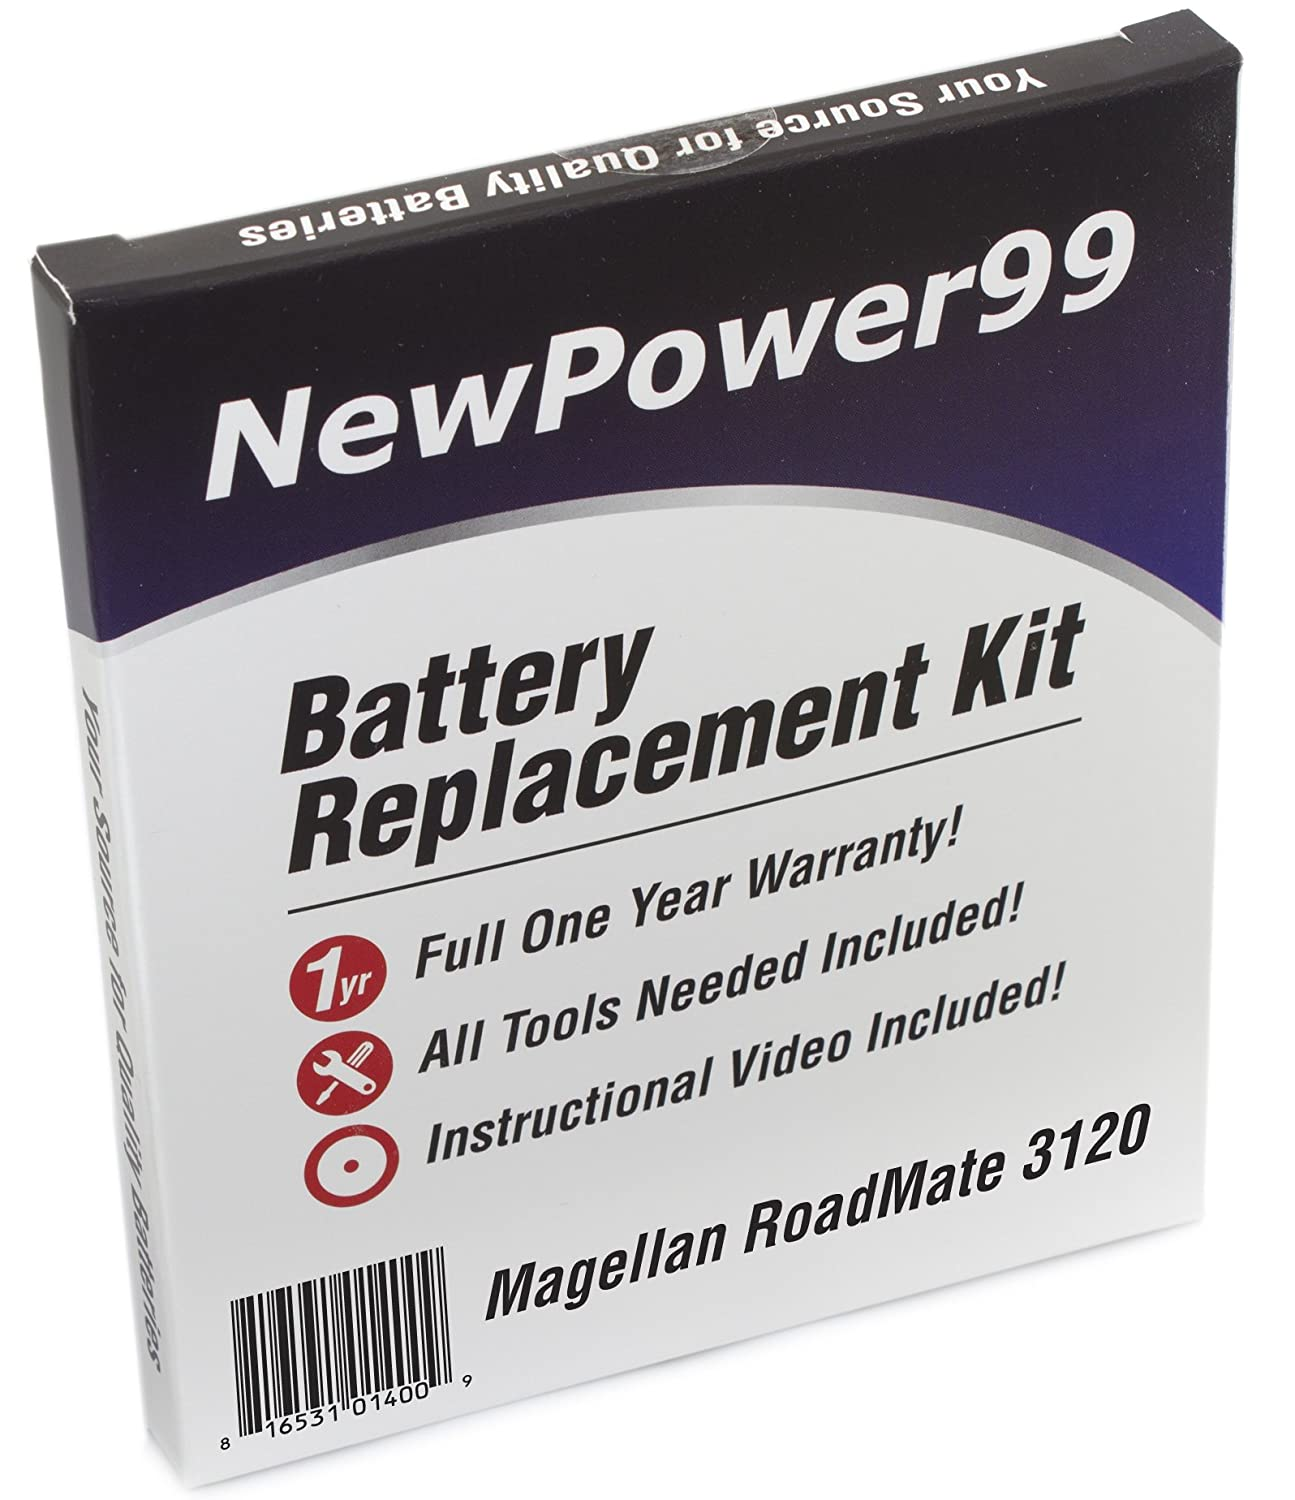 NewPower99 Battery Replacement Kit with Battery Video Instructions and Tools for Magellan RoadMate 3120